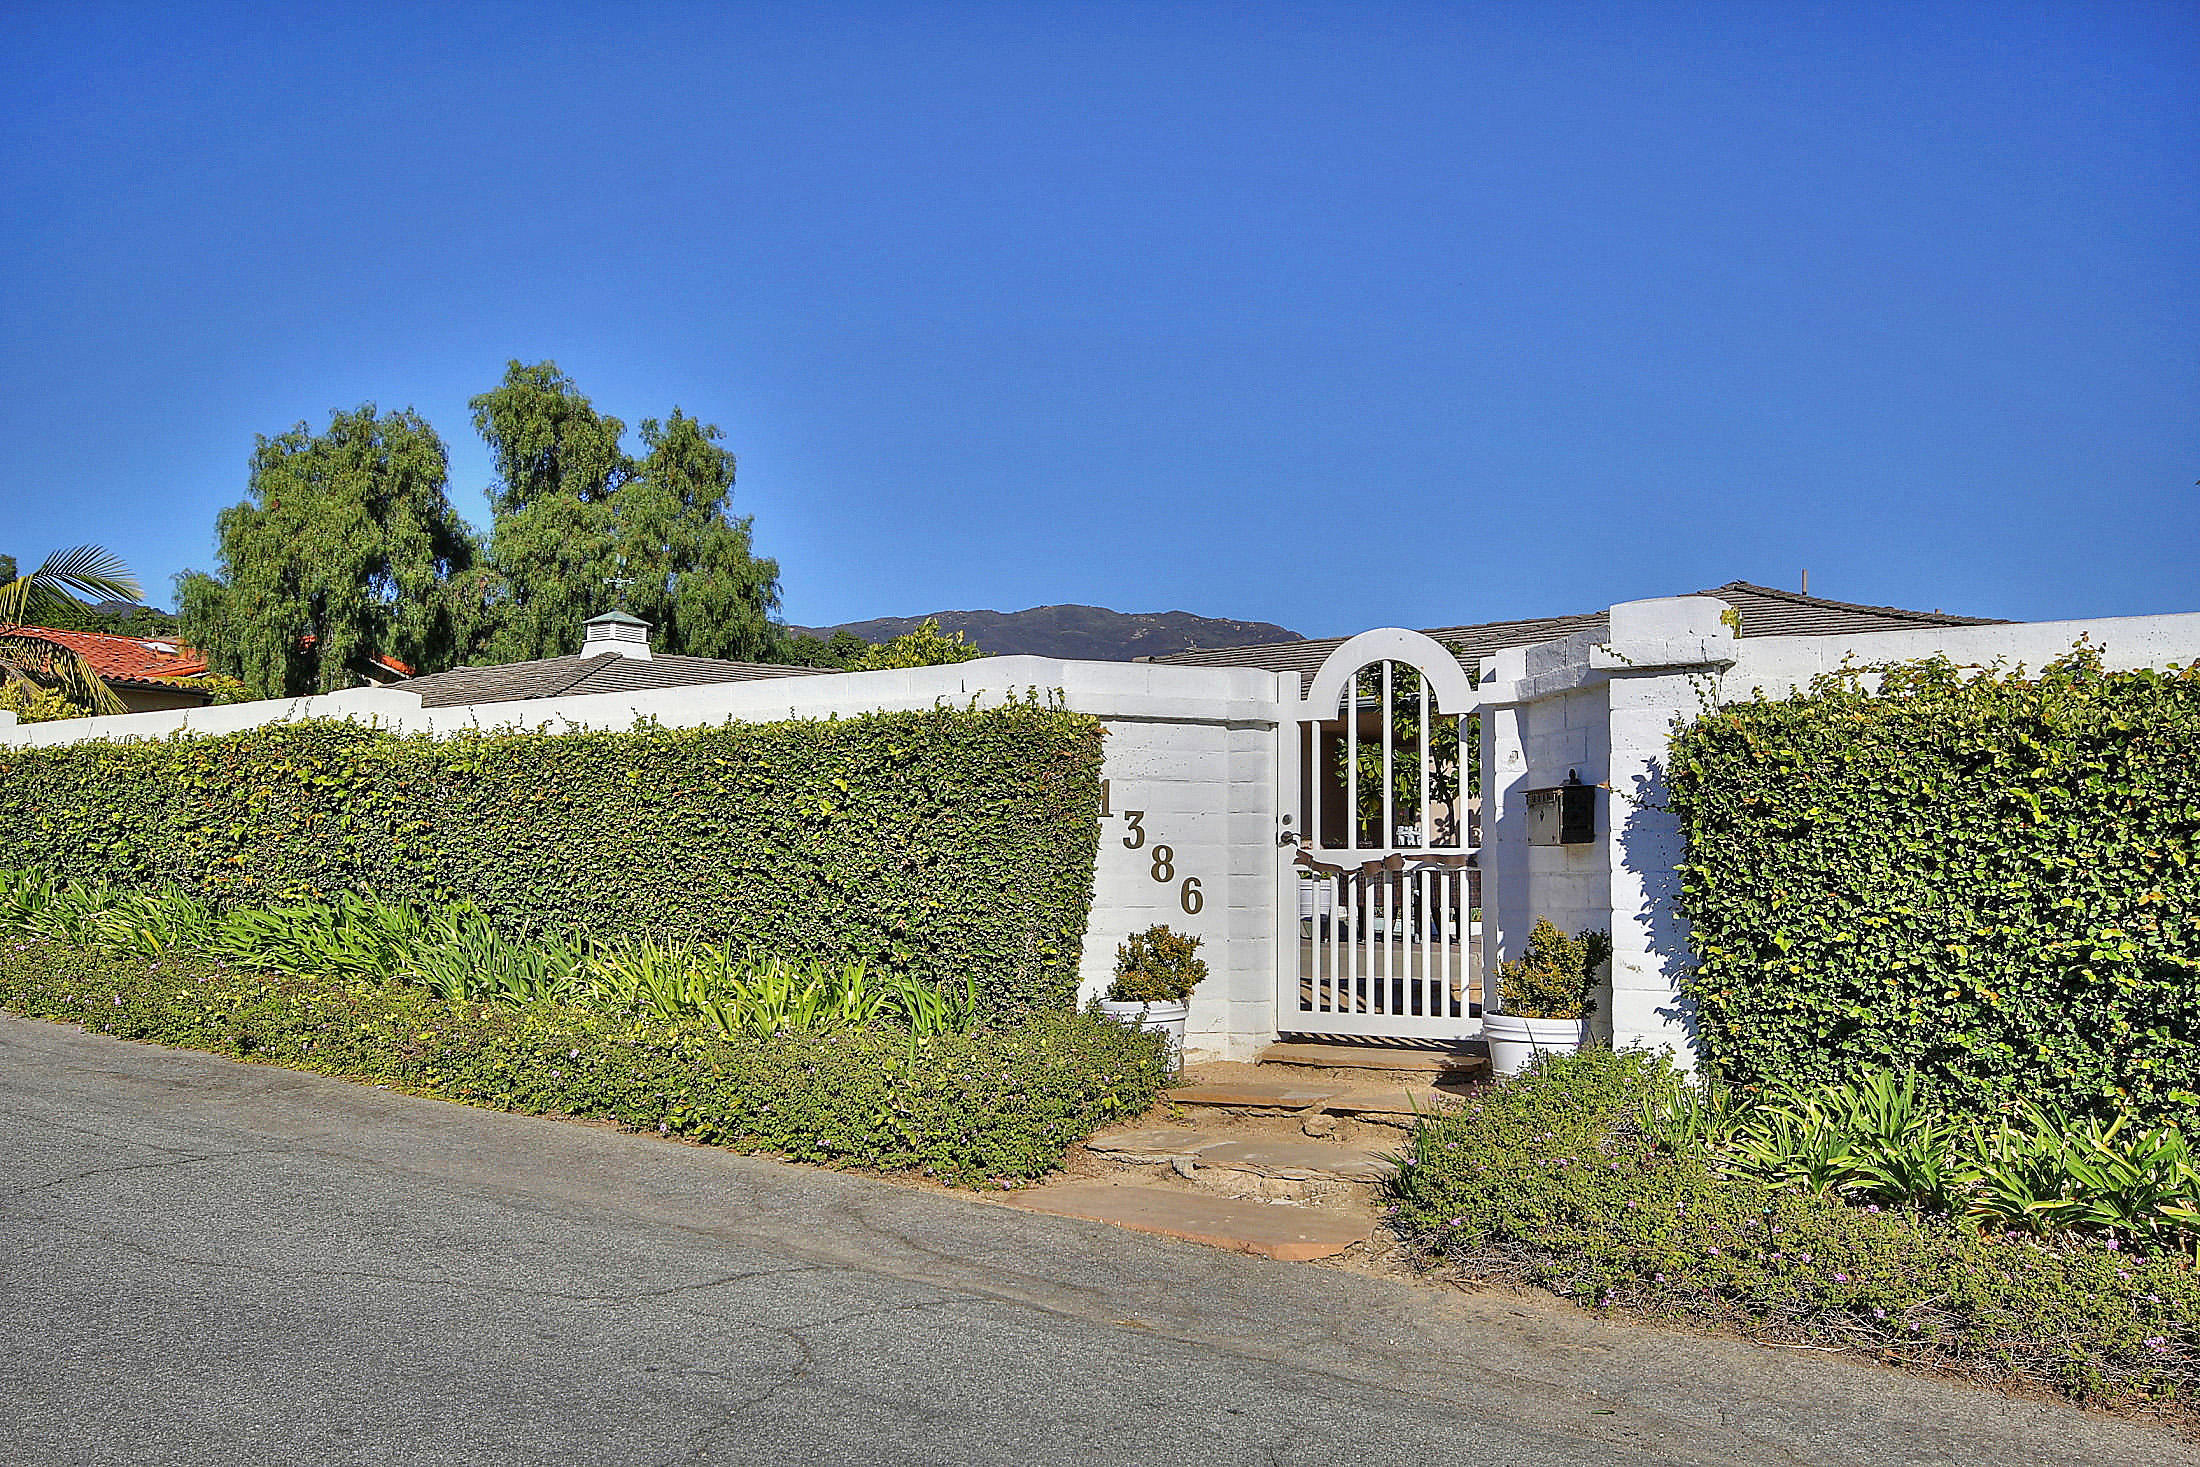 Property photo for 1386 Camino Meleno Santa Barbara, California 93111 - 14-3639